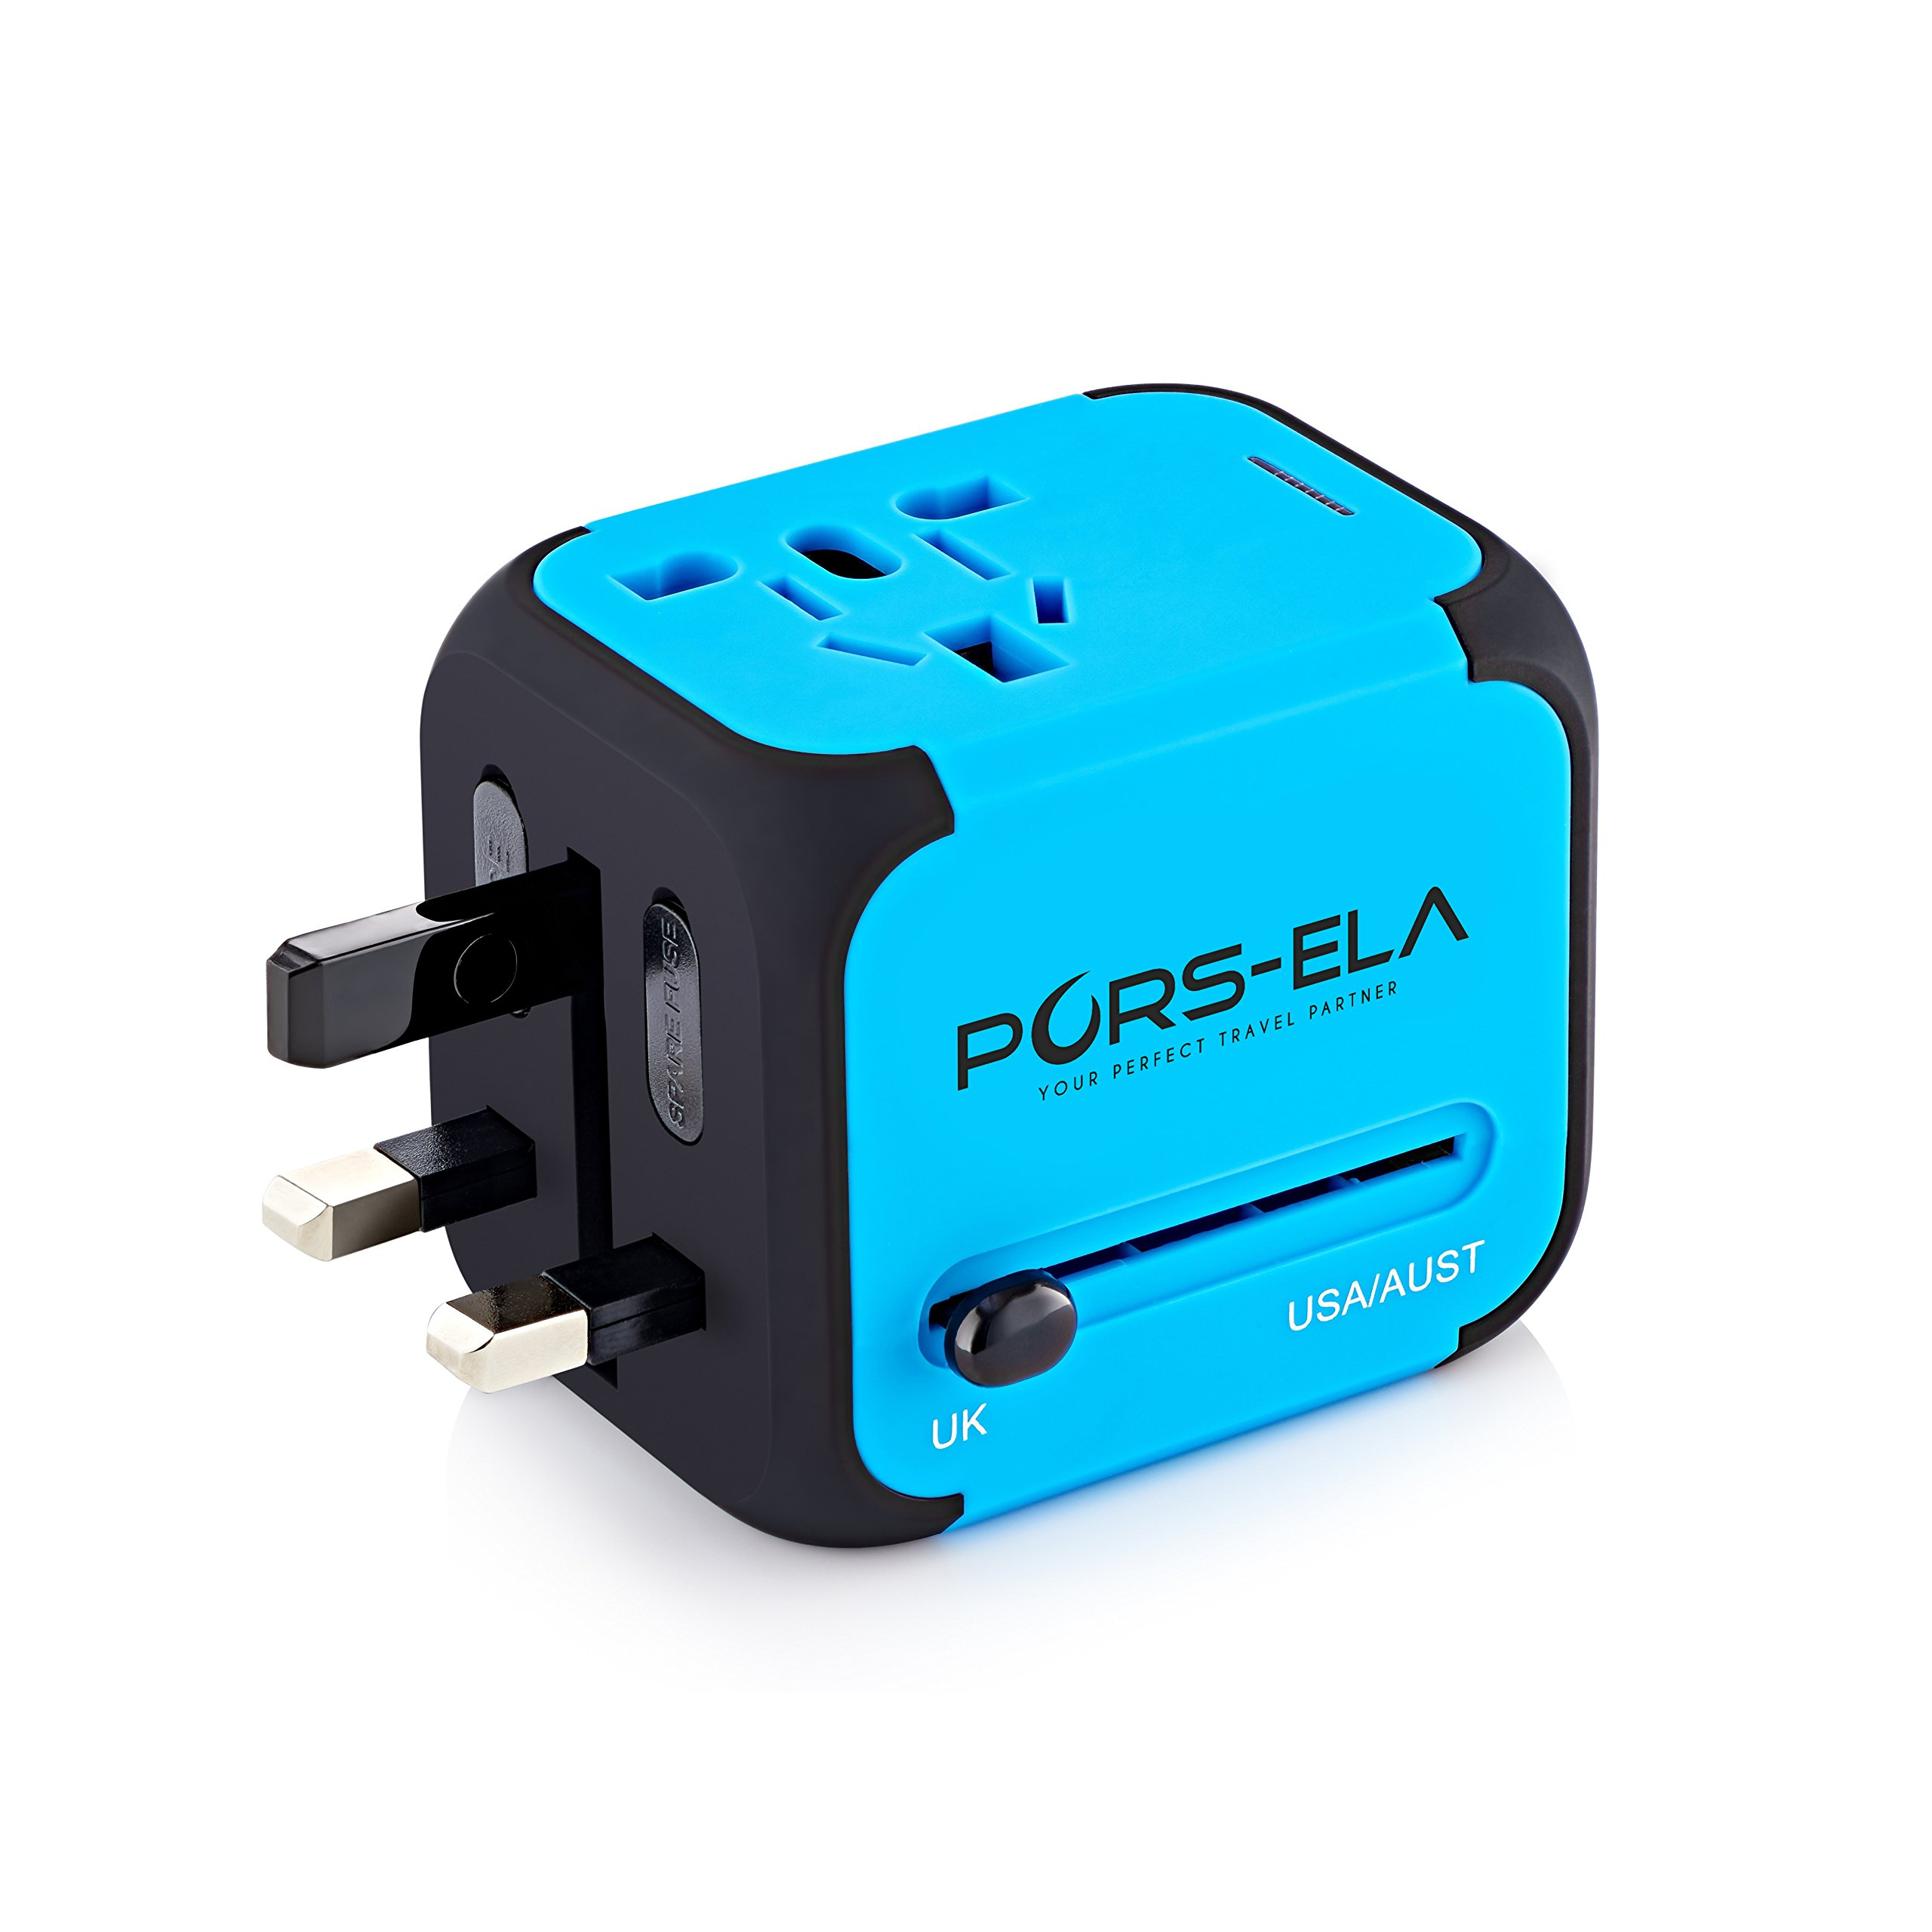 Travel Adapter, International Power Adapter with 2-Port USB Wall Charger & European UK US AU Plugs, Built-in Spare Safety Fuse, Gift Pouch - Blue